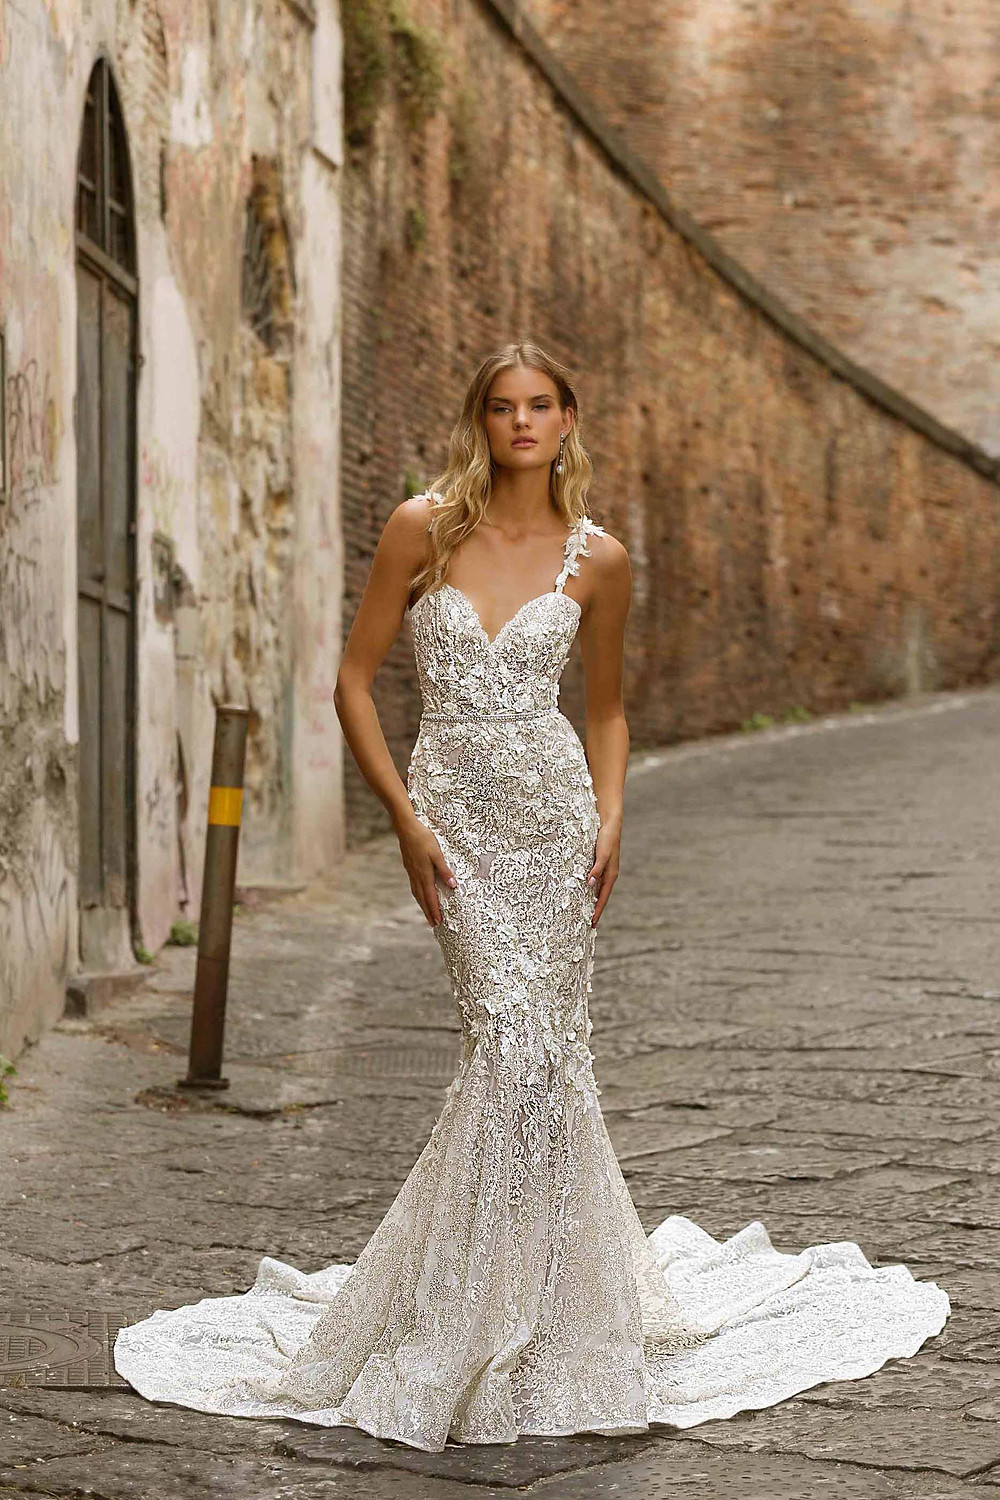 A Berta 2020 lace mermaid wedding dress, with straps, a sweetheart neckline and and flowers